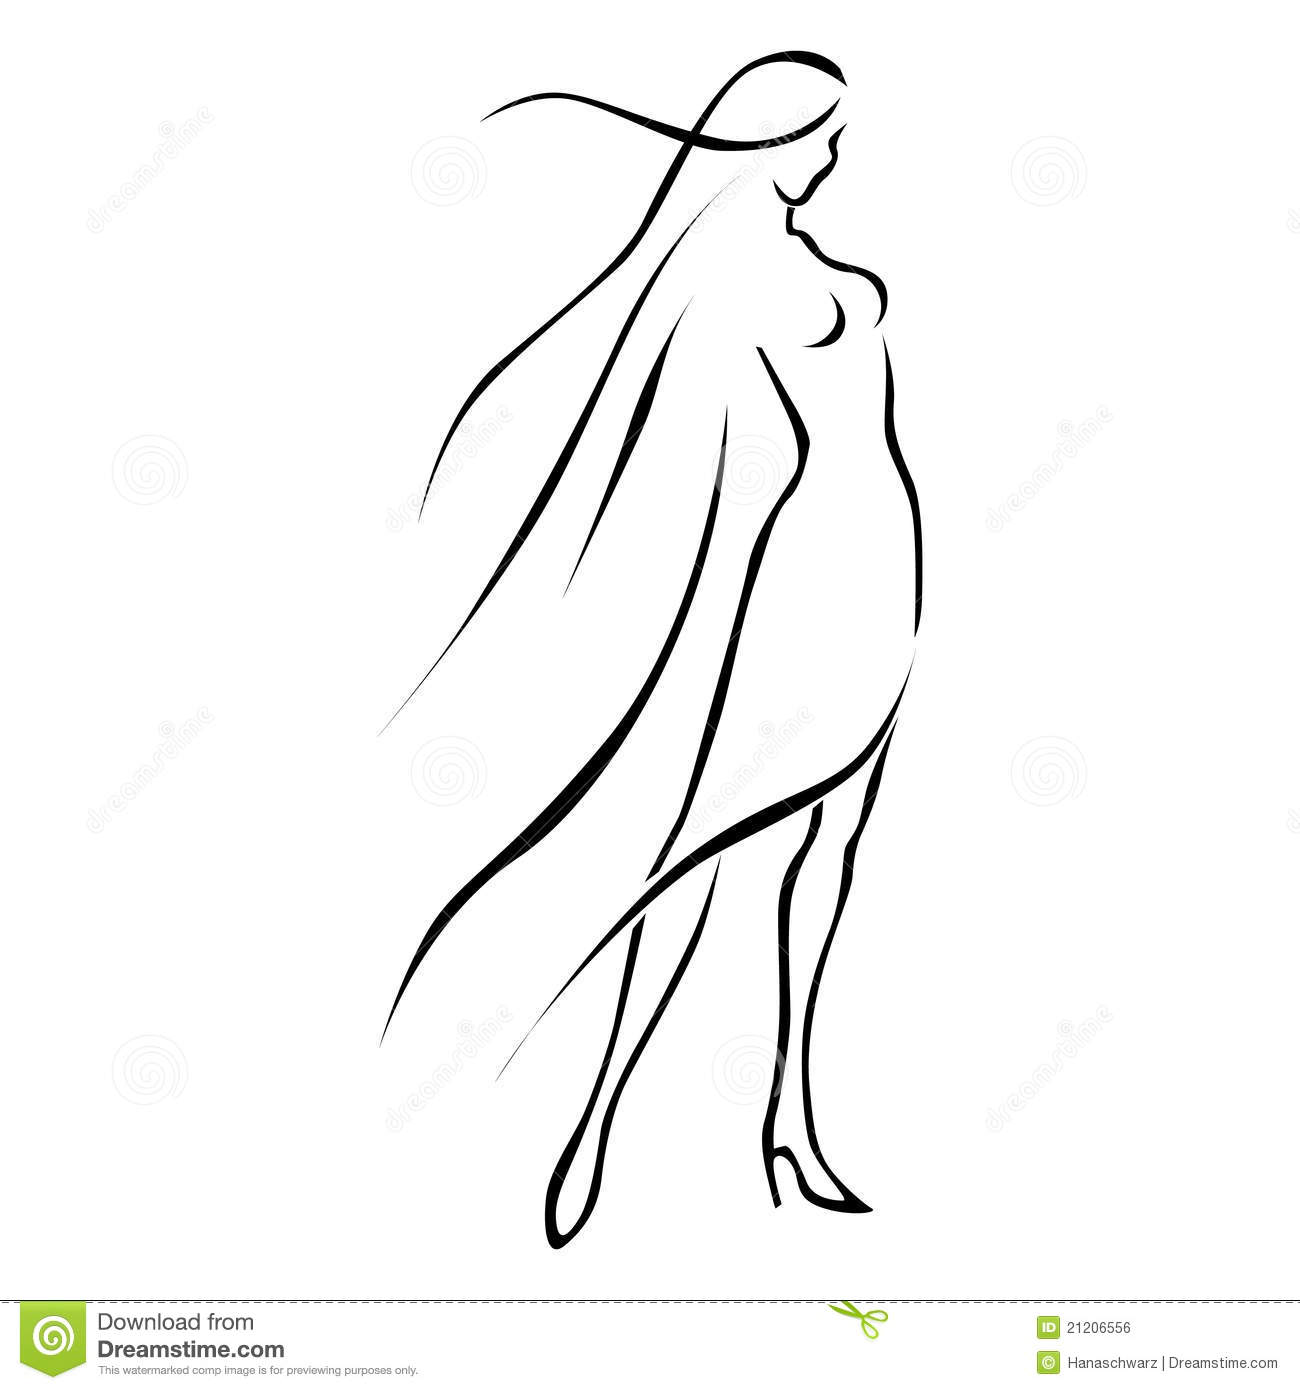 Line Drawing Woman : Black line woman in wind royalty free stock image